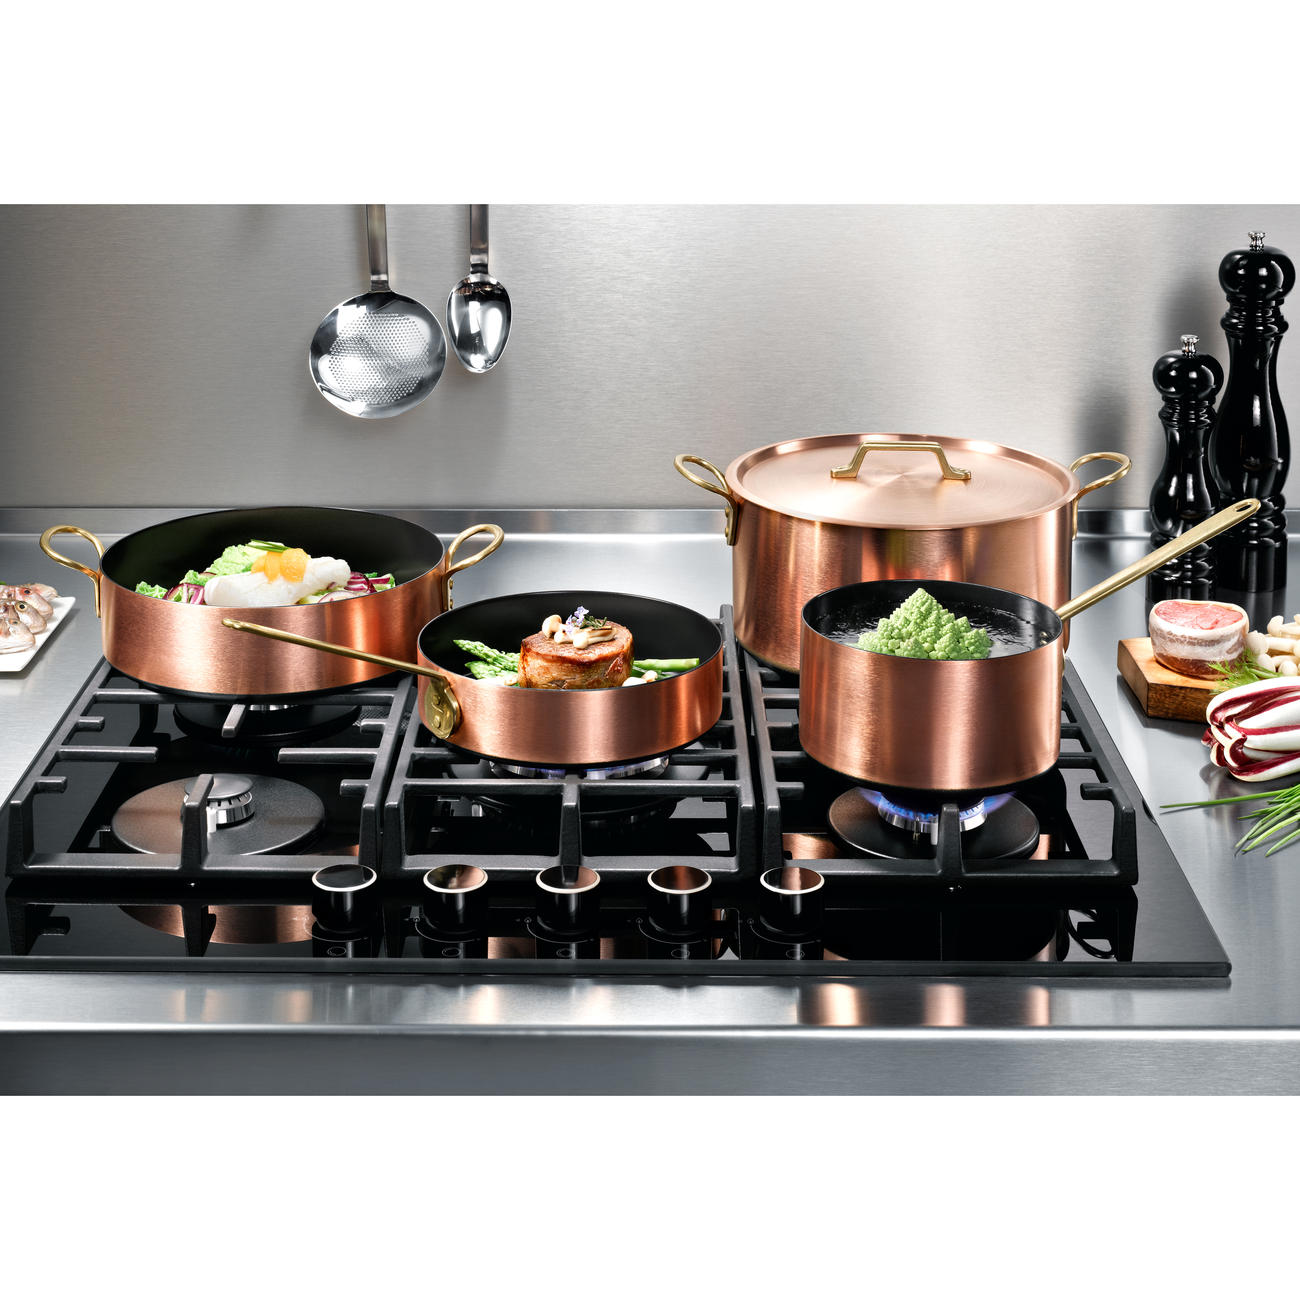 Cuisine Induction Induction Copper Cookware 3 Year Product Guarantee